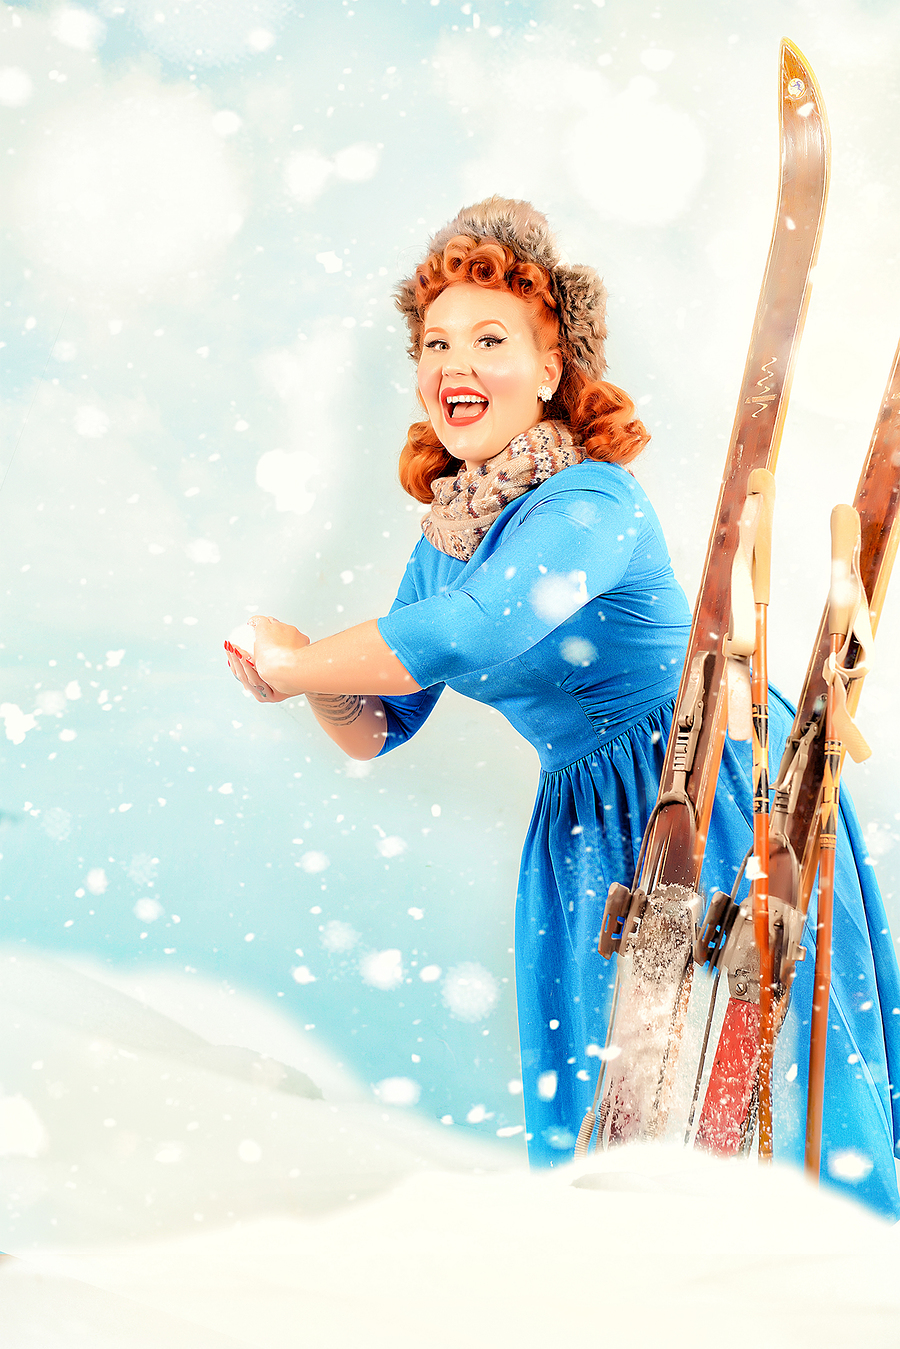 Winter pinup / Photography by Are Knudsen Photography / Uploaded 19th January 2021 @ 09:15 AM